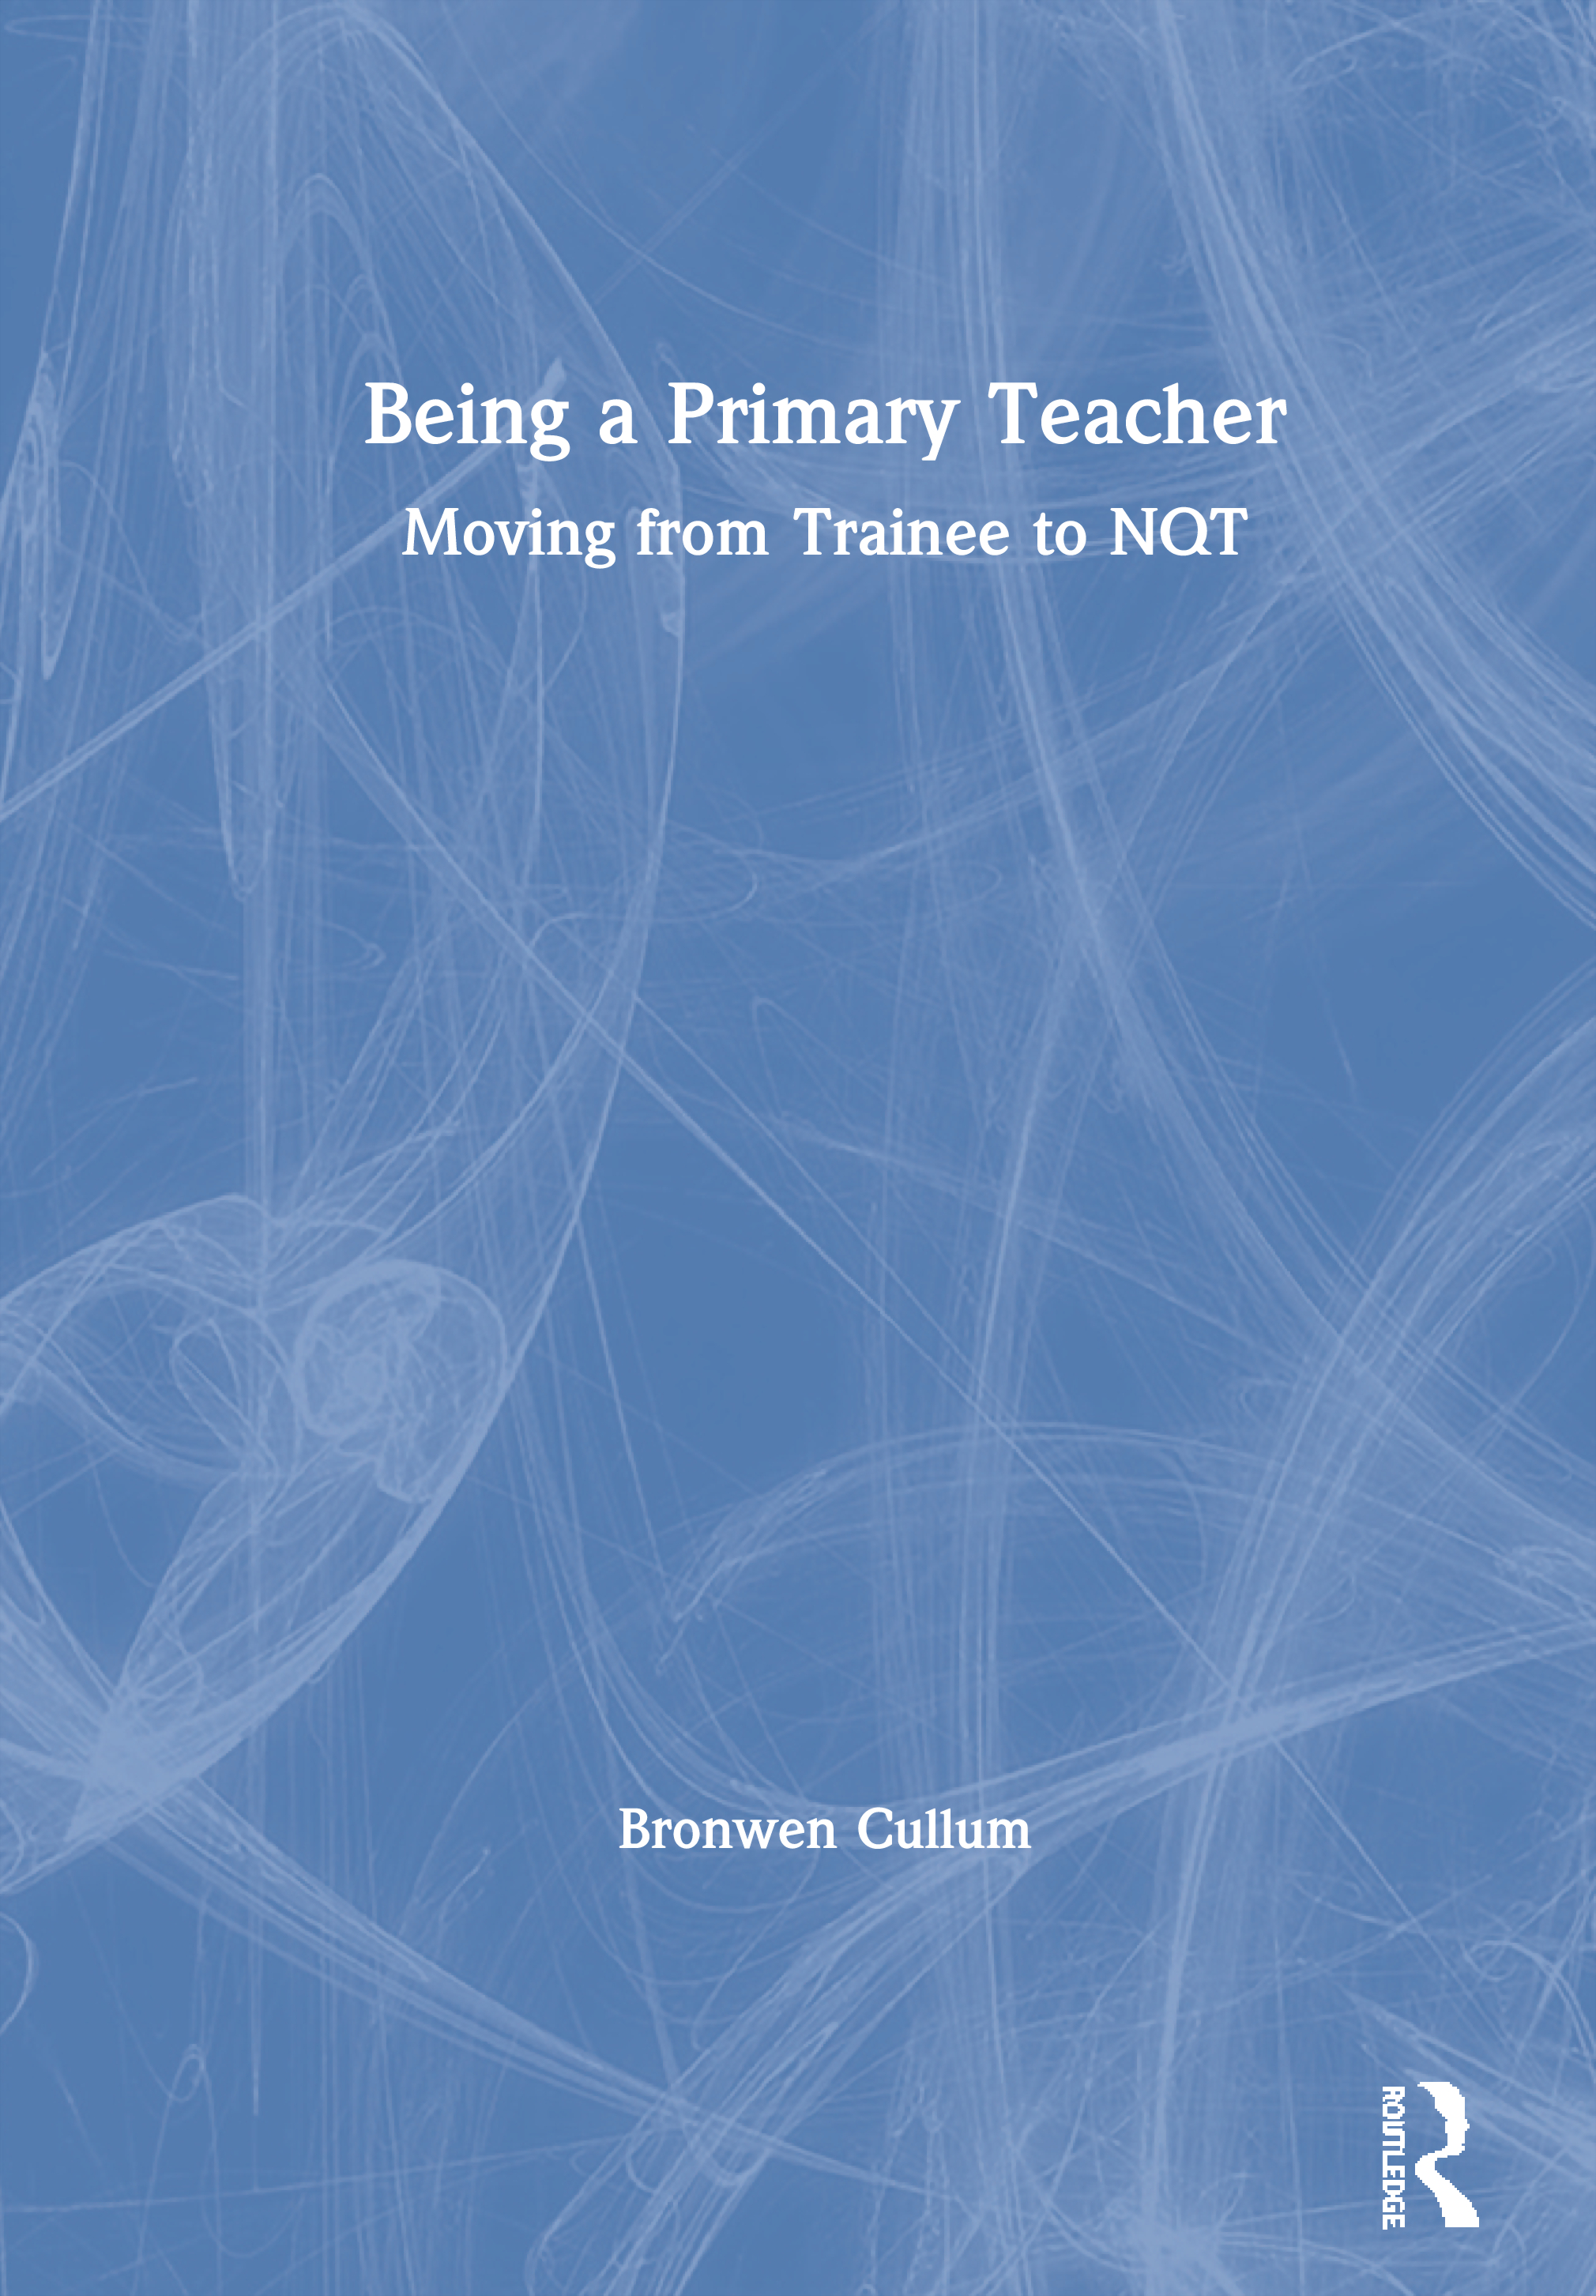 Being a Primary Teacher: Moving from Trainee to NQT book cover